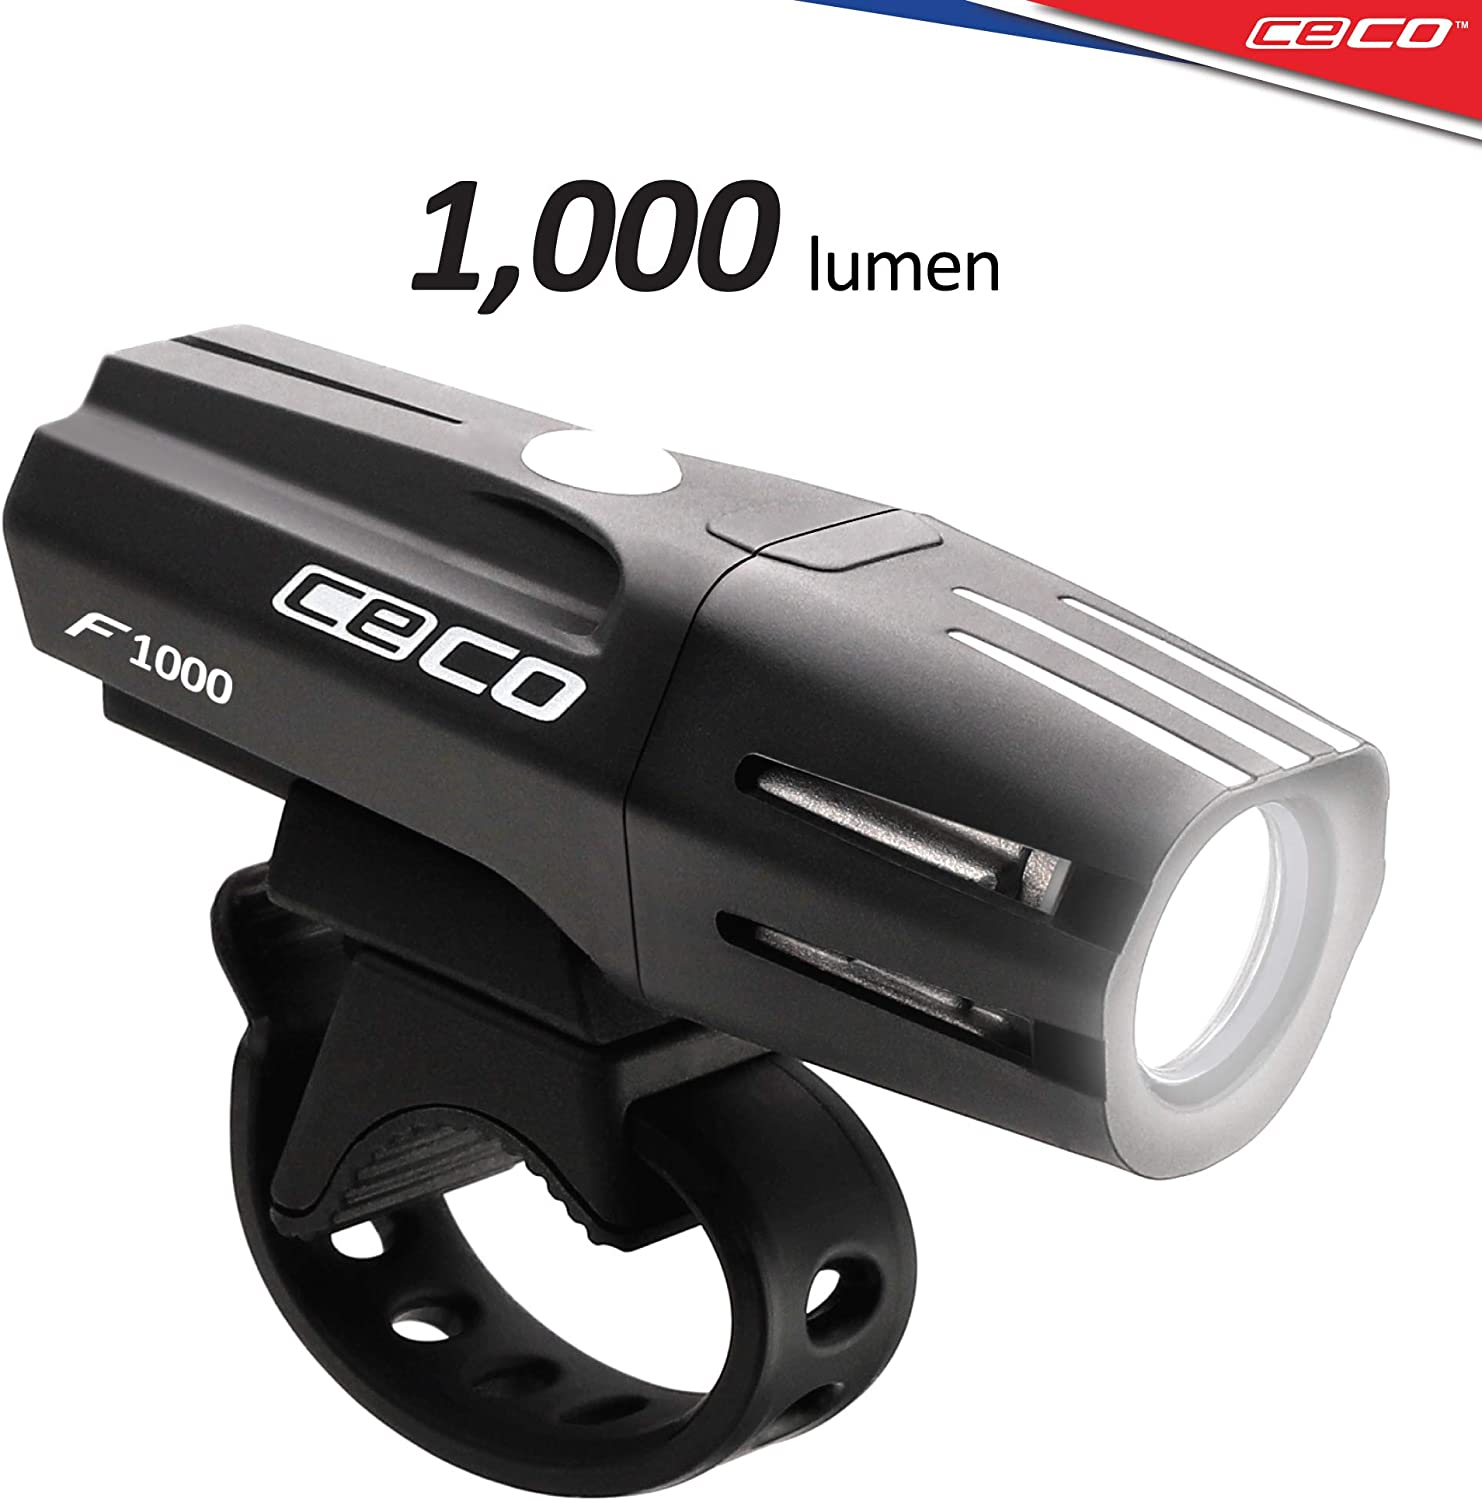 CECO-USA 1,000 Lumen USB Rechargeable Bike Light Tough Durable IP67 Waterproof FL-1 Impact Resistant Super Bright Model F1000 Bicycle Headlight For Commuters, Road Cyclists Mountain Bikers